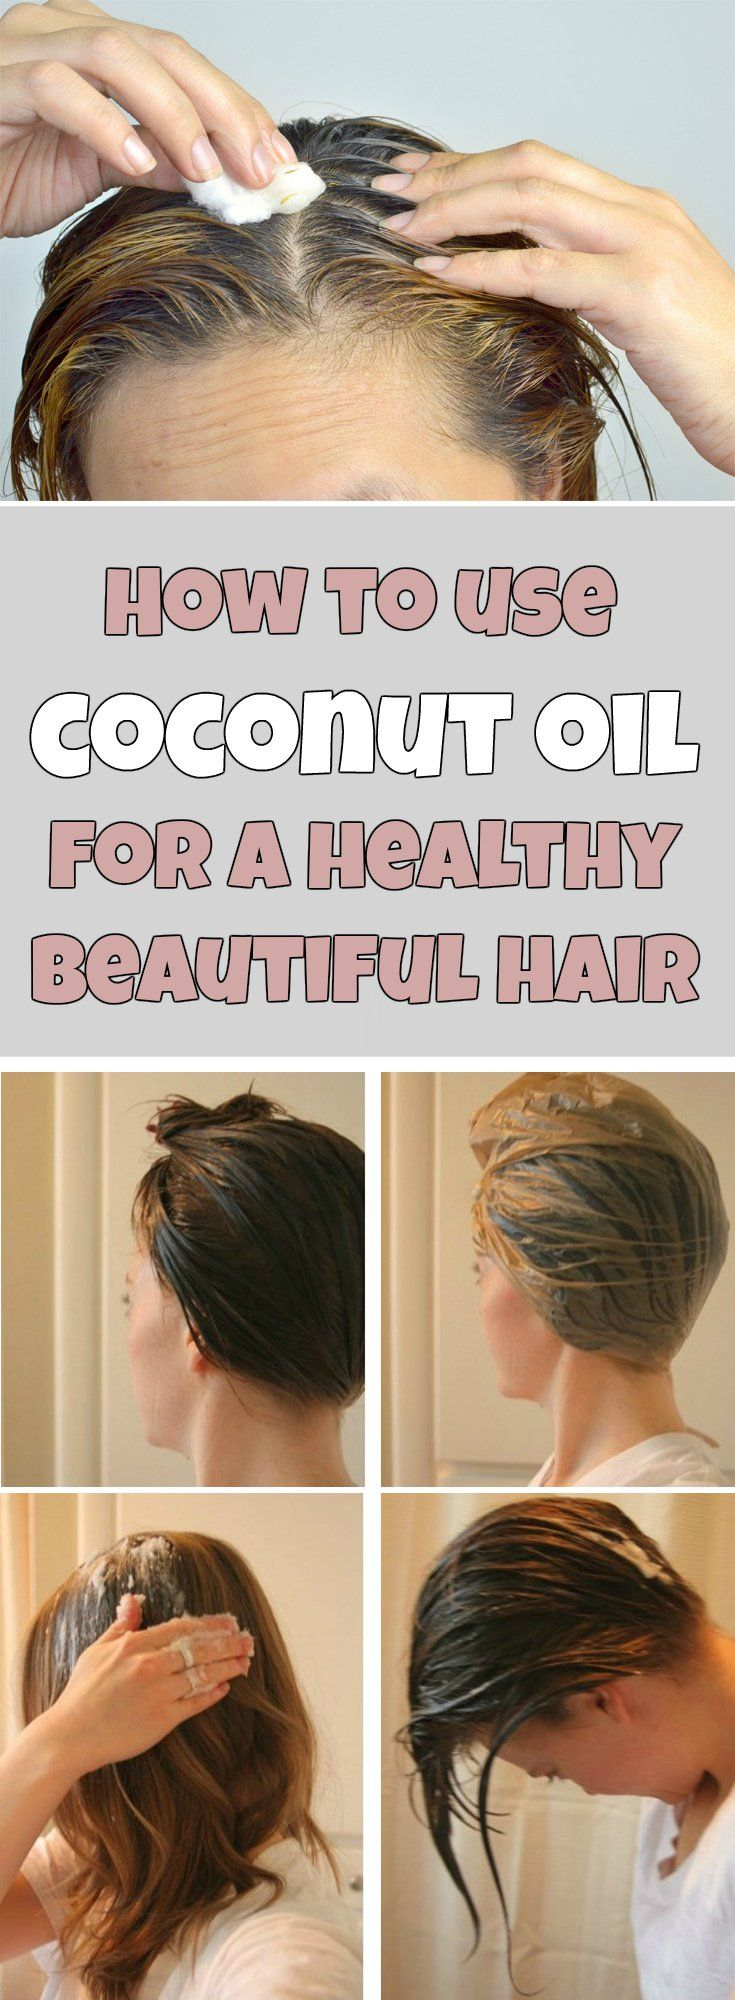 use coconut oil on your hair and skin hairstyles pinterest cheveux beaut et coiffures. Black Bedroom Furniture Sets. Home Design Ideas